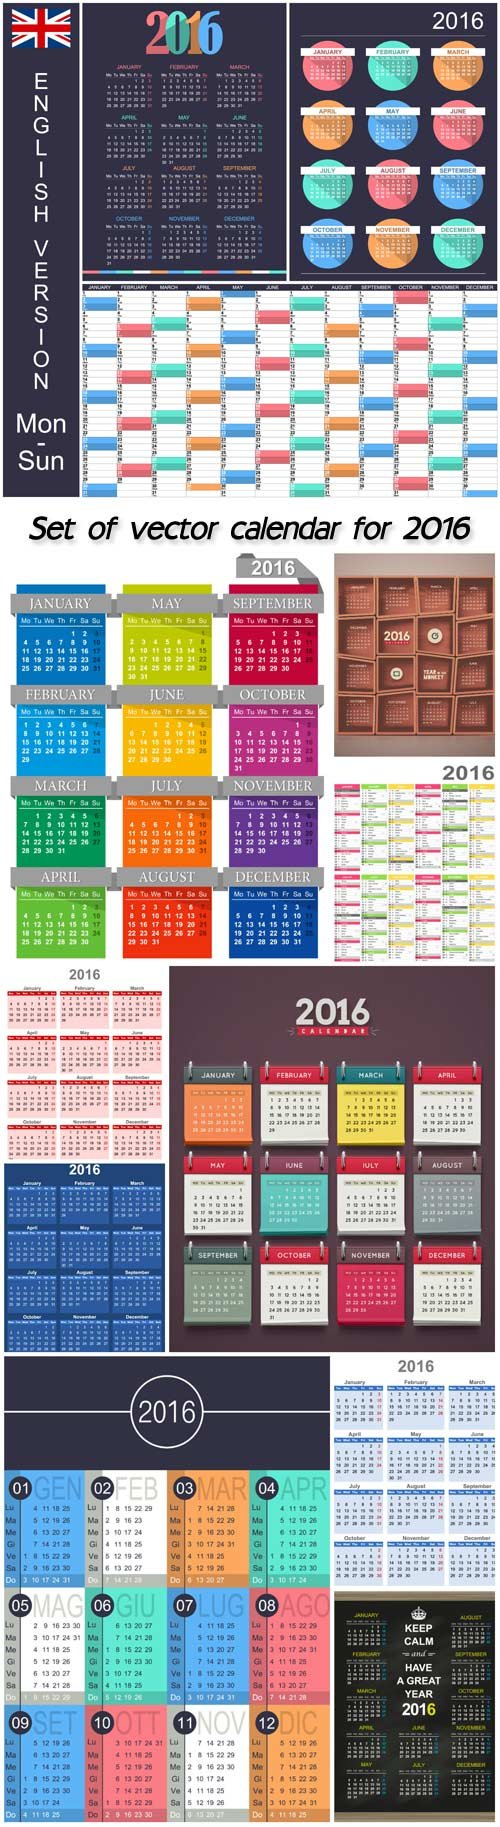 Set of vector calendar for 2016